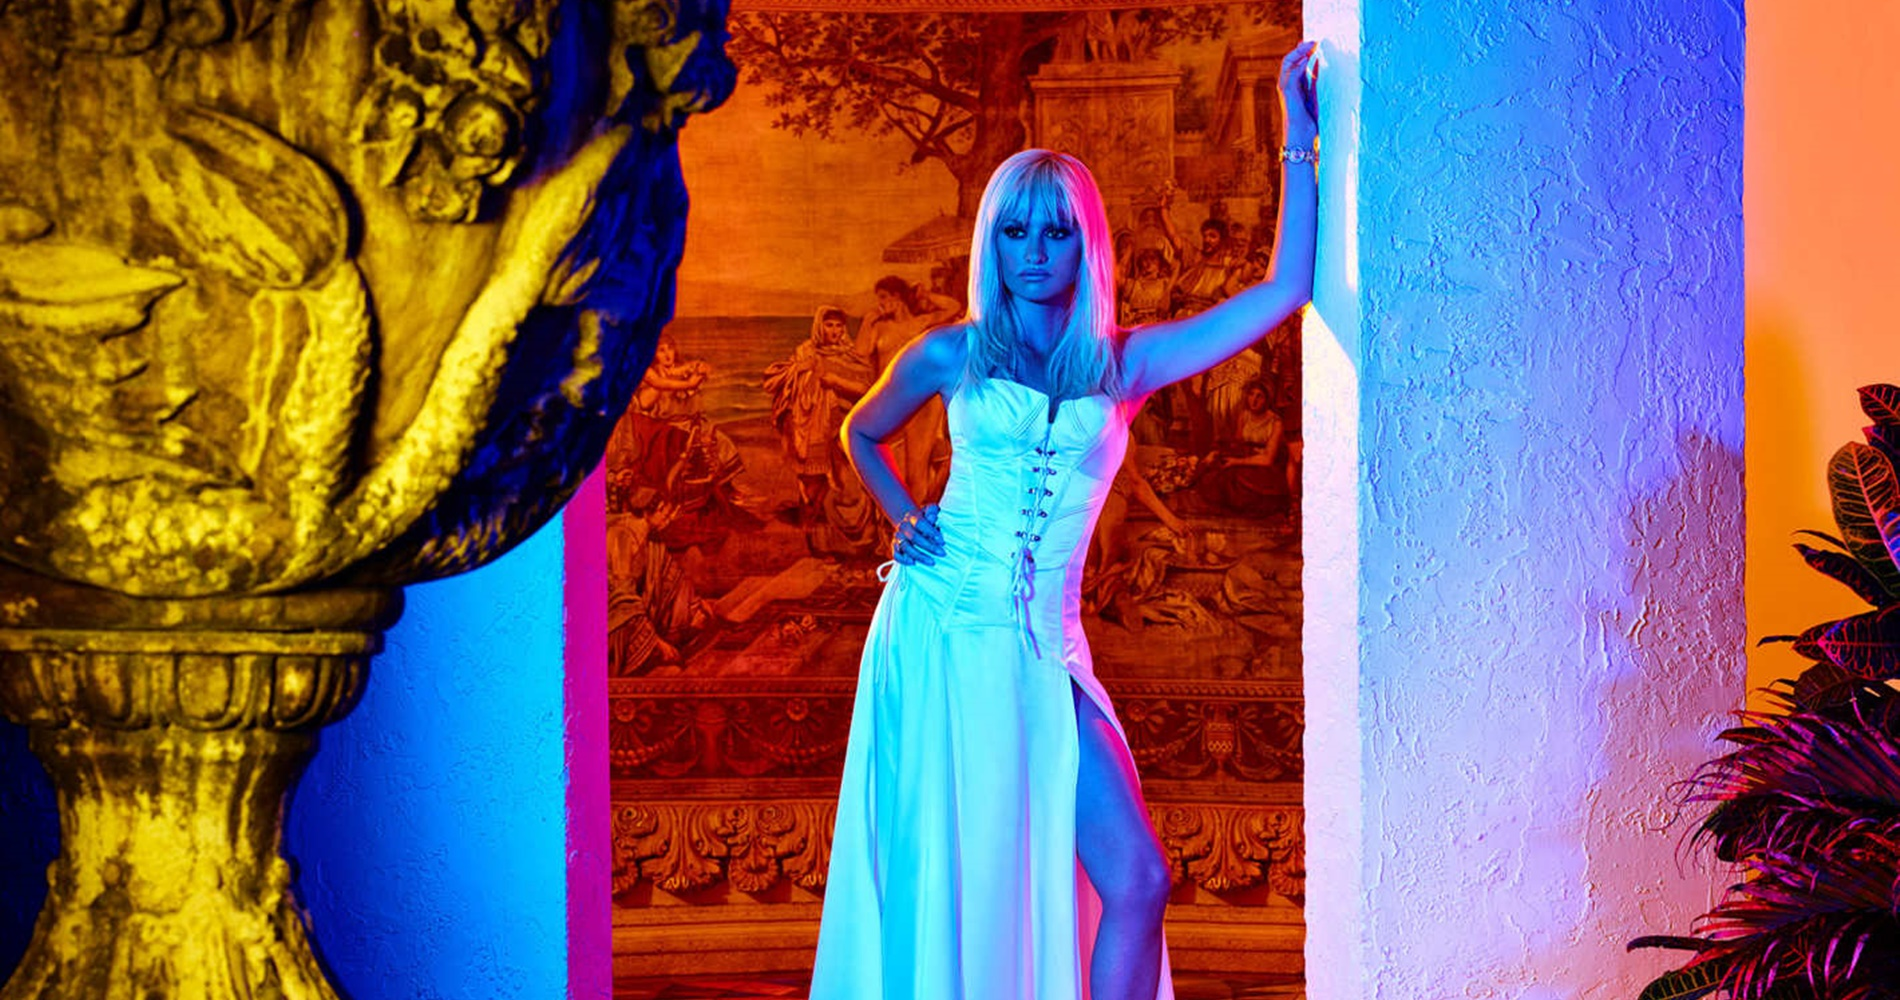 Donatella Versace wearing a white dress while she poses in a doorway., movies/tv, pop culture, wdc-slideshow